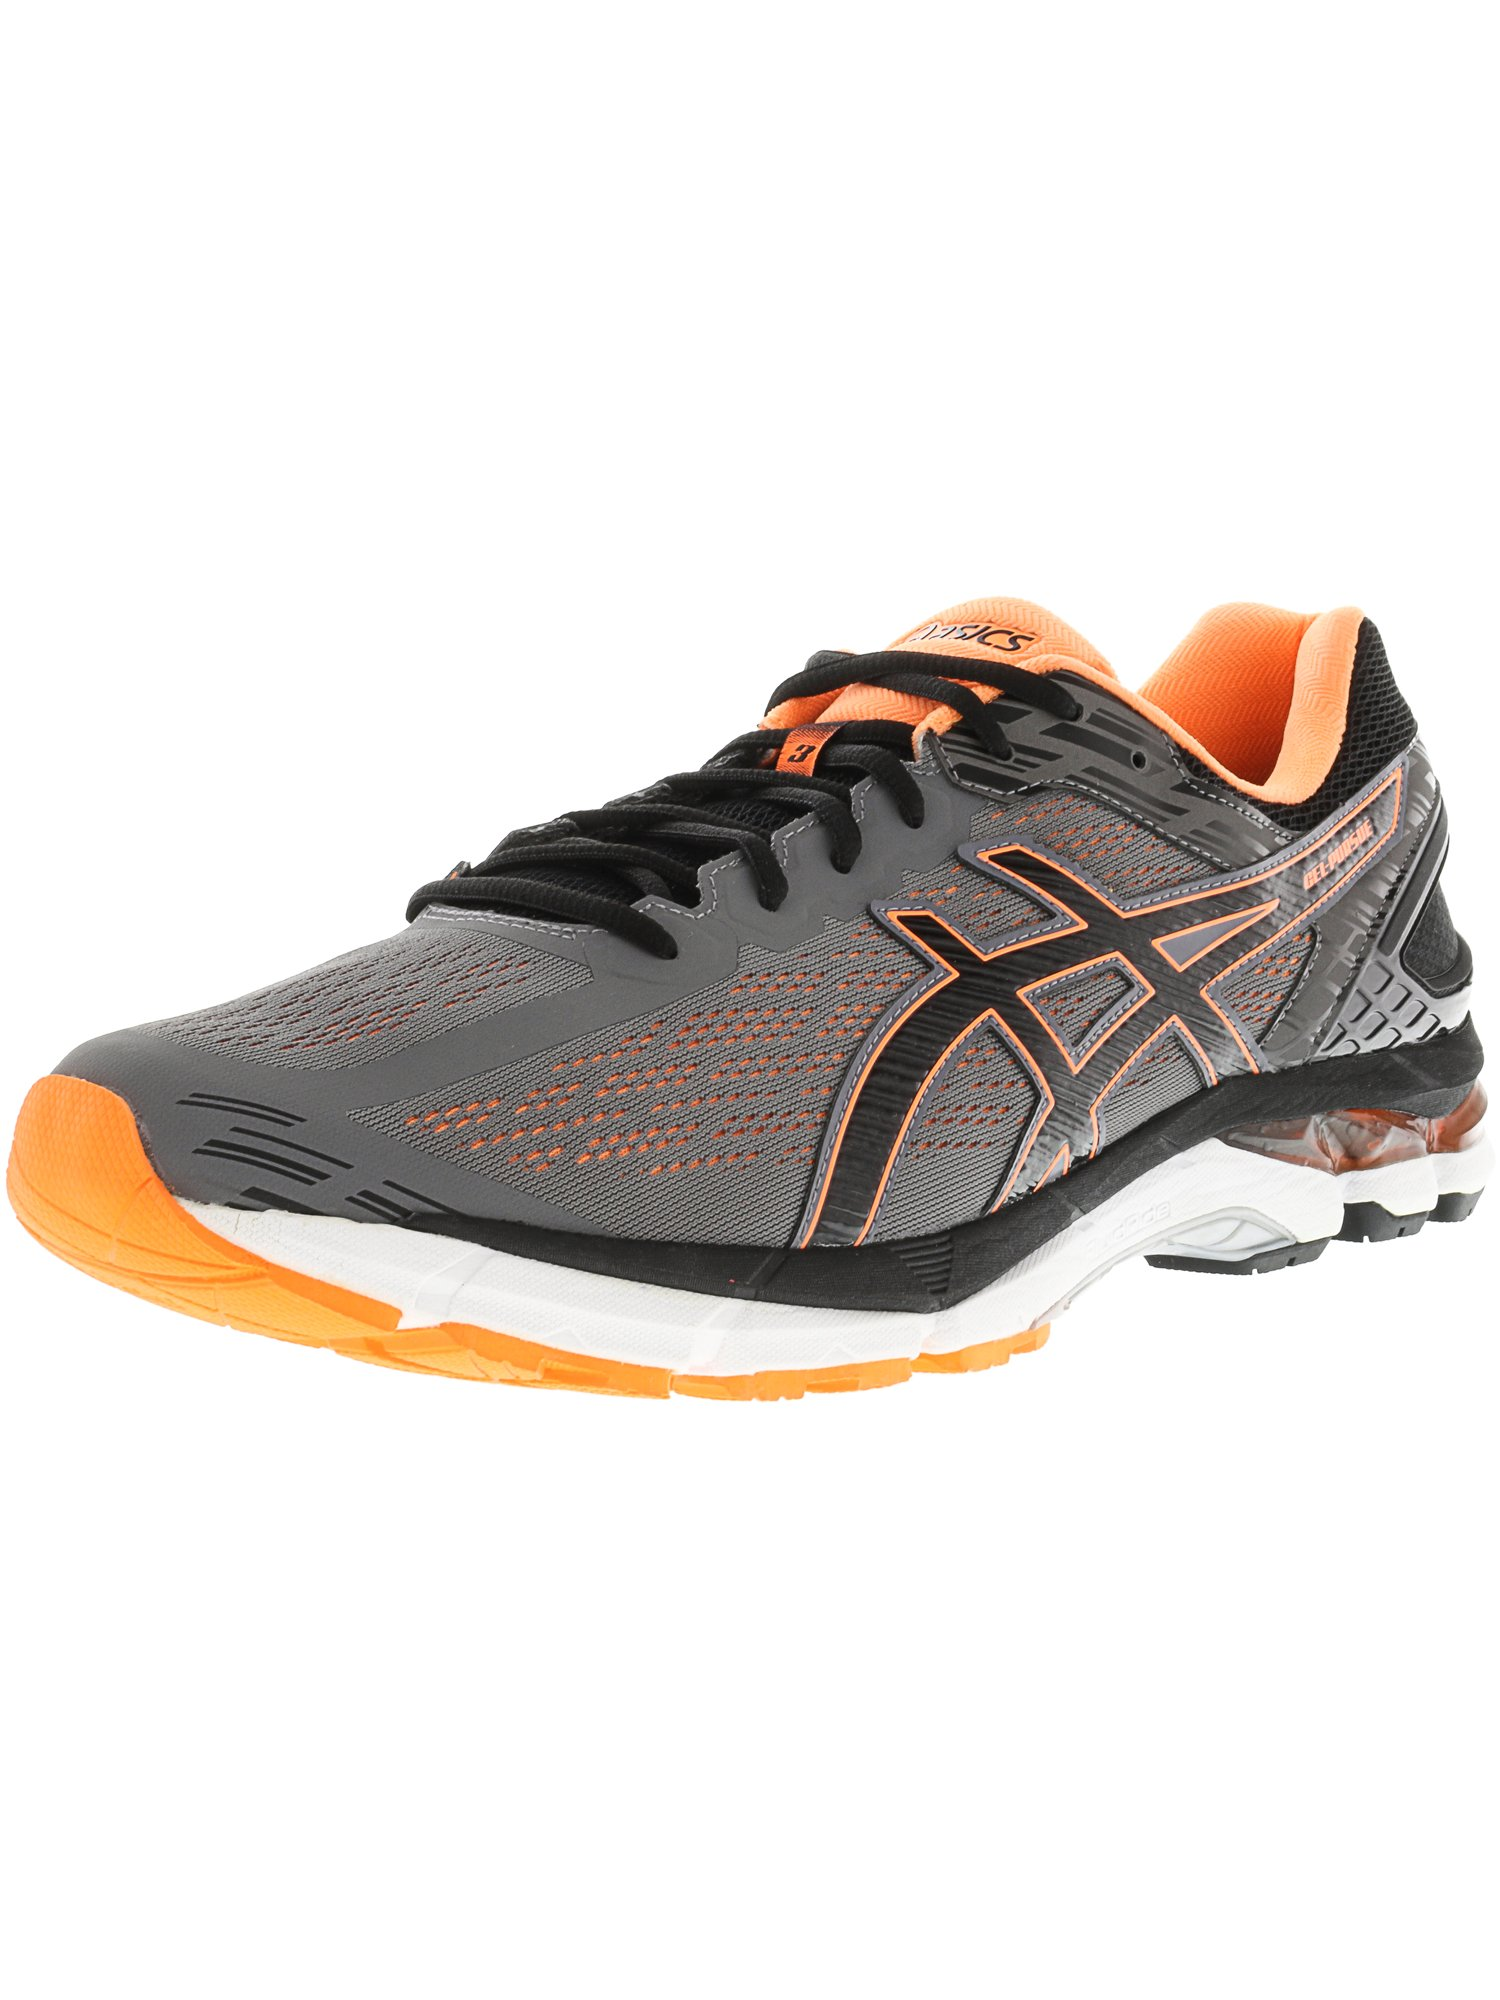 Asics Men's Gel-Pursue 3 Carbon / Black Hot Orange Ankle-High Fabric Running Shoe - 12.5M